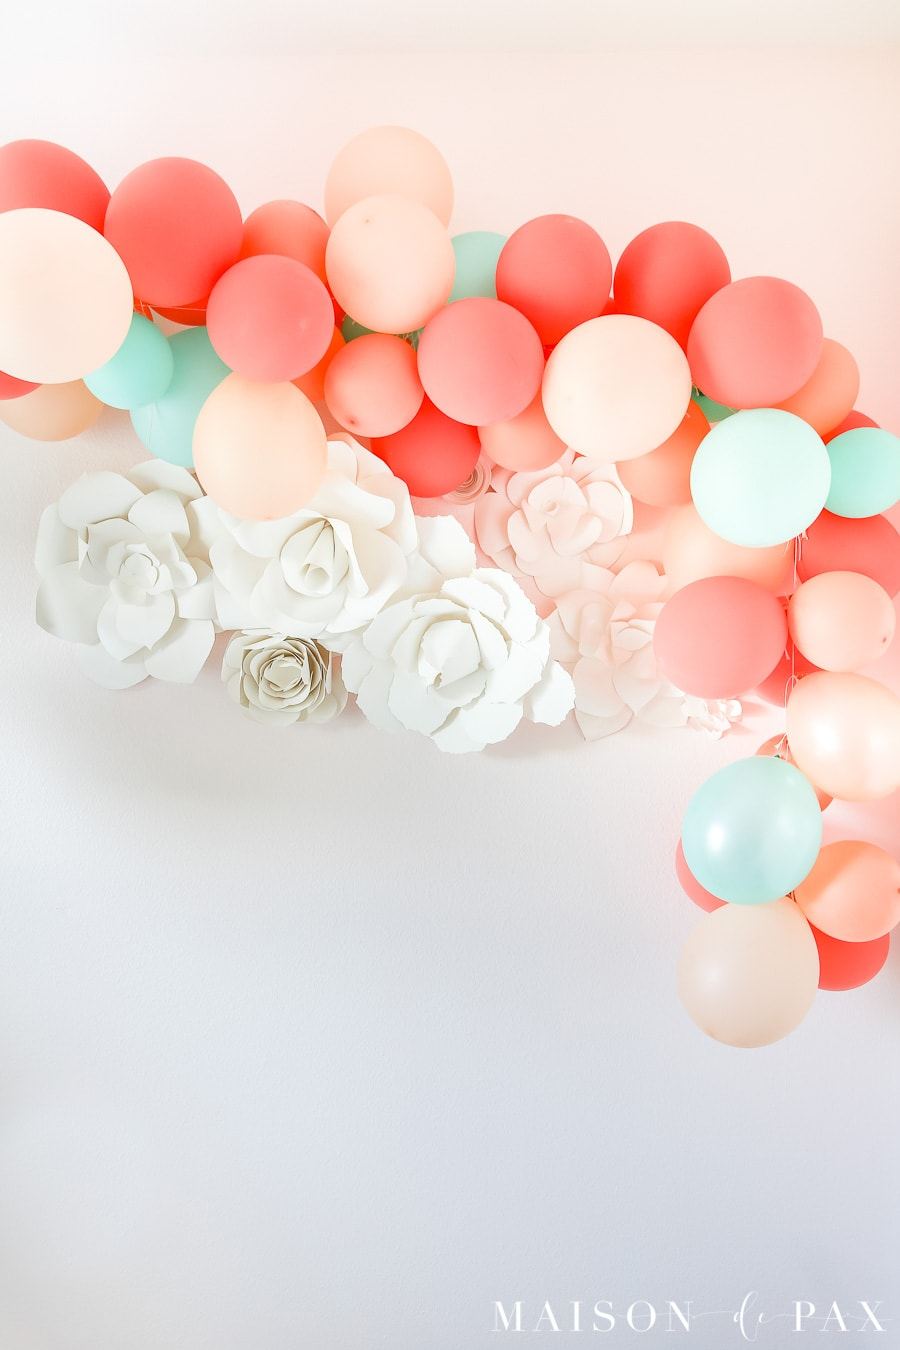 How To Make A Balloon Garland Maison De Pax